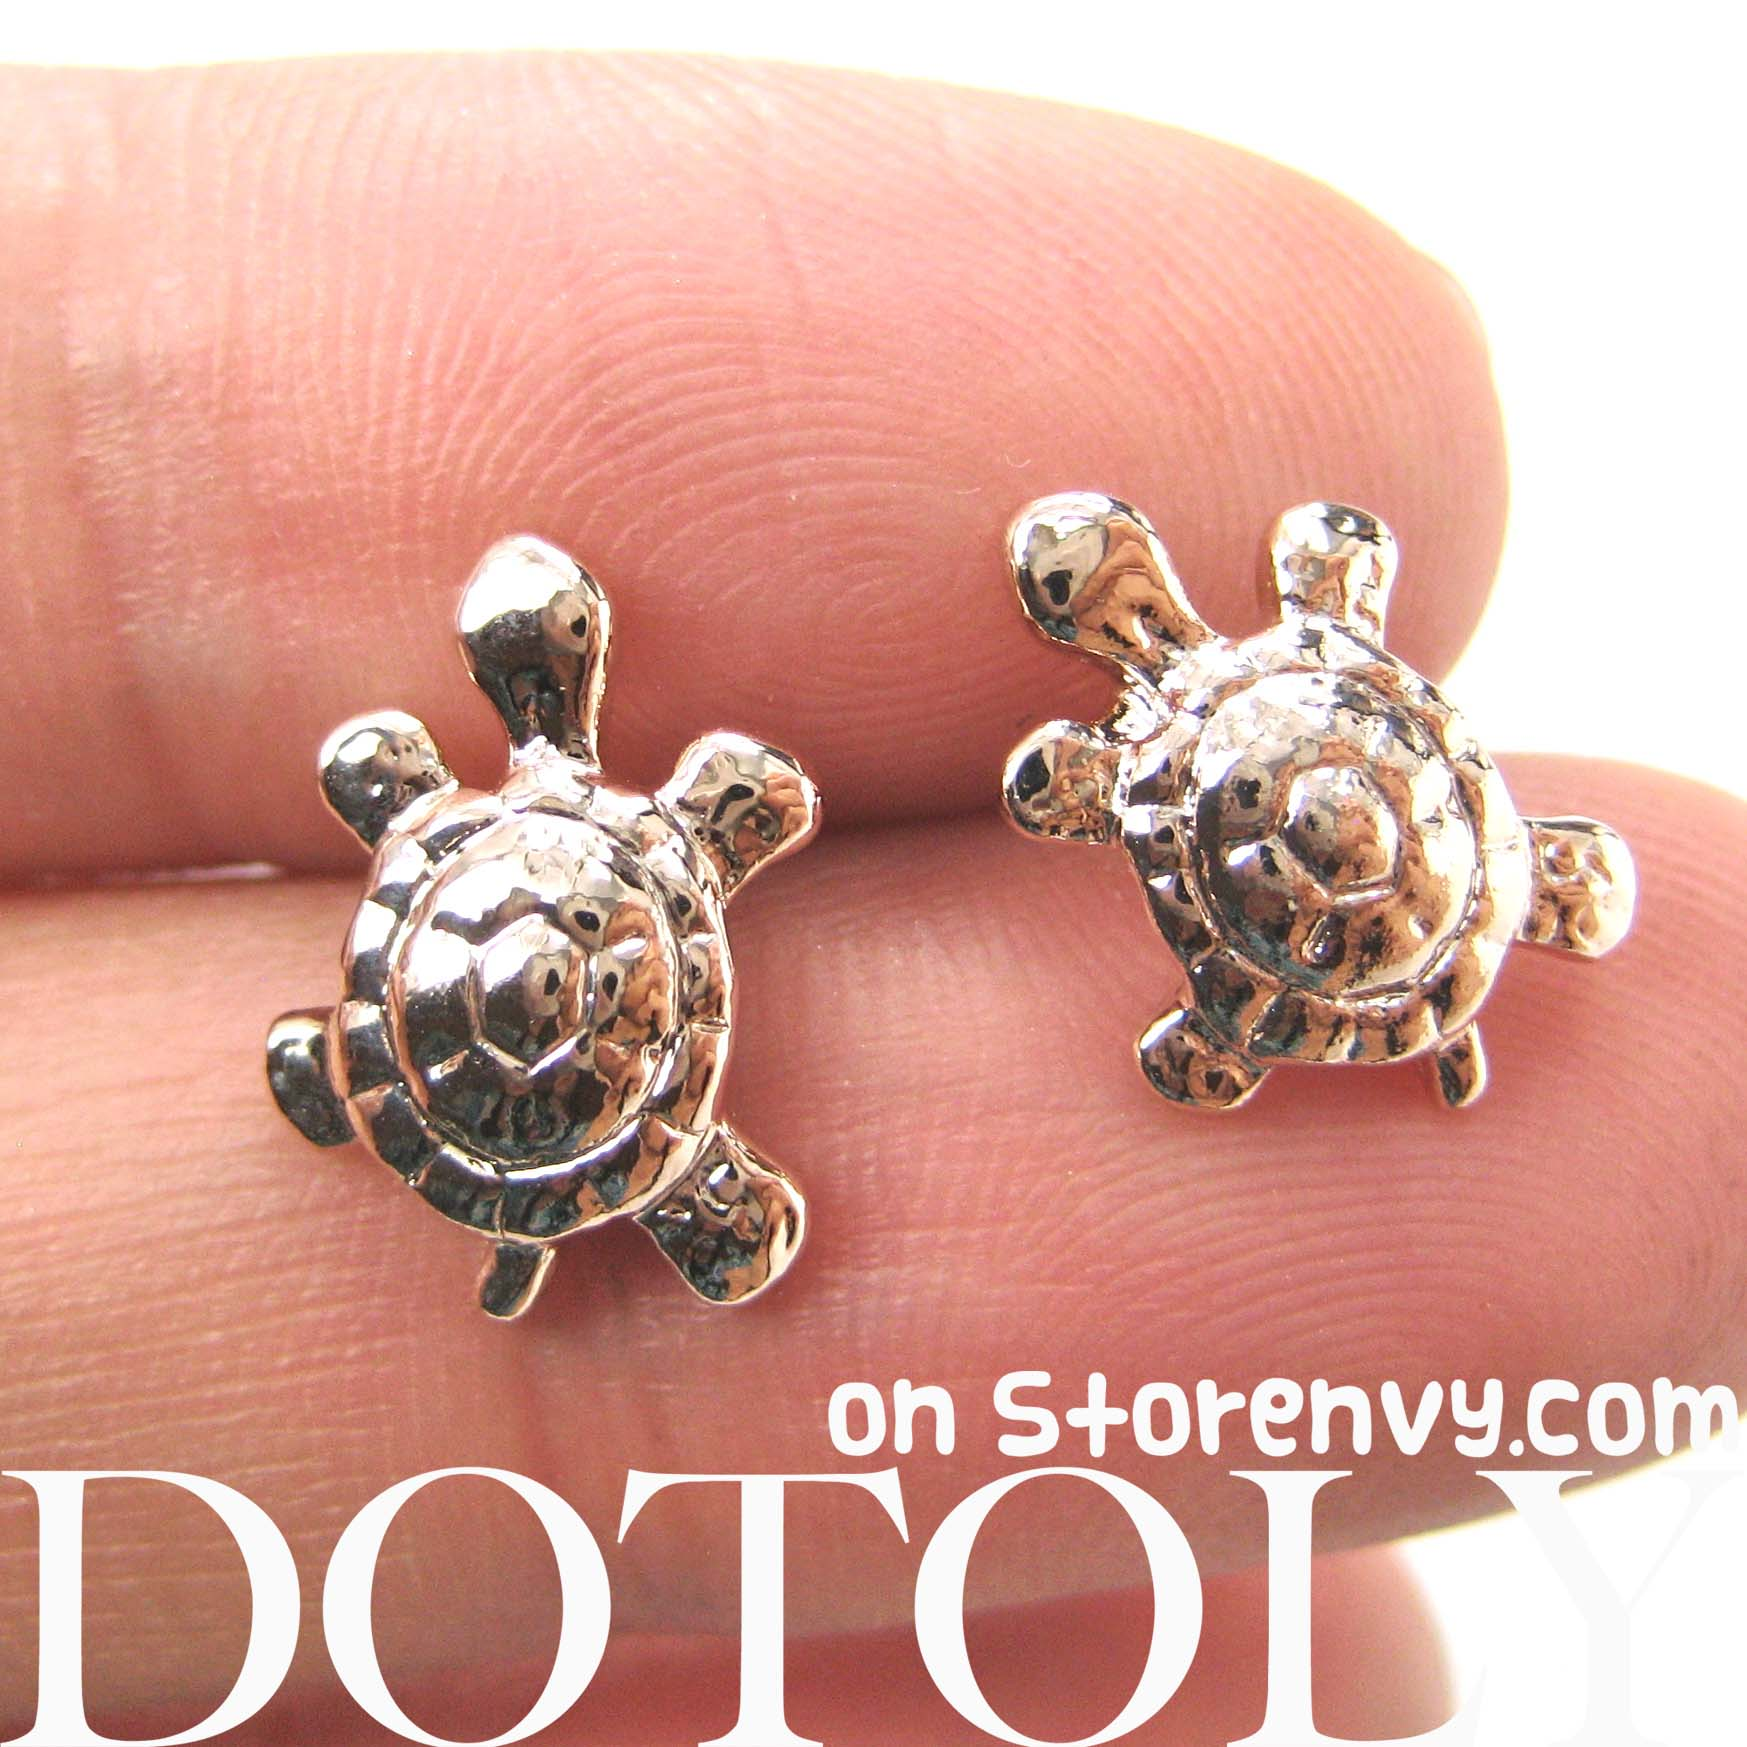 product nauticalwheeler sea silver earrings in sterling image stud of turtle